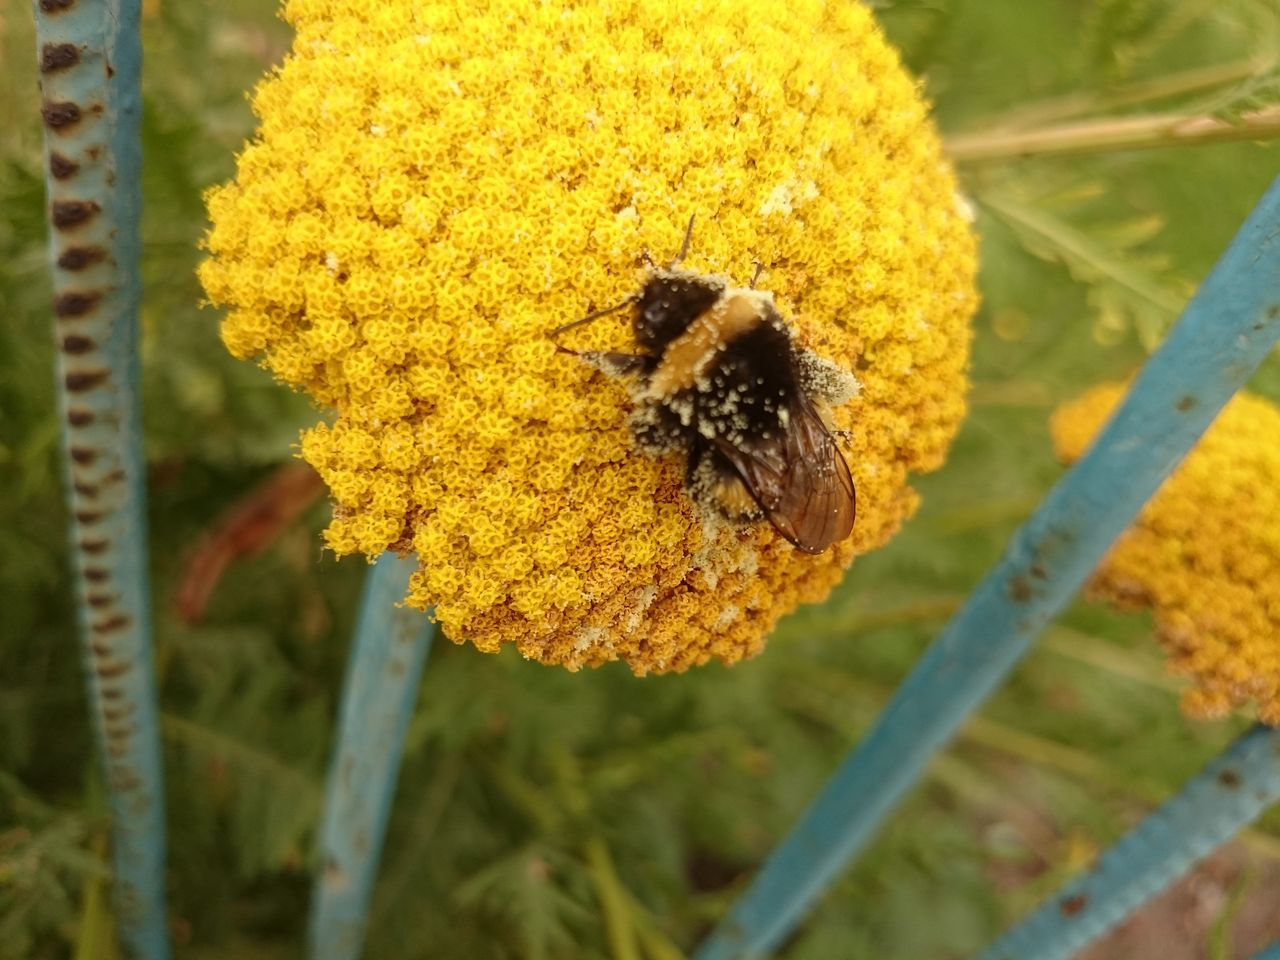 flower, yellow, insect, nature, beauty in nature, fragility, freshness, animal themes, animals in the wild, one animal, no people, growth, outdoors, bee, close-up, day, plant, flower head